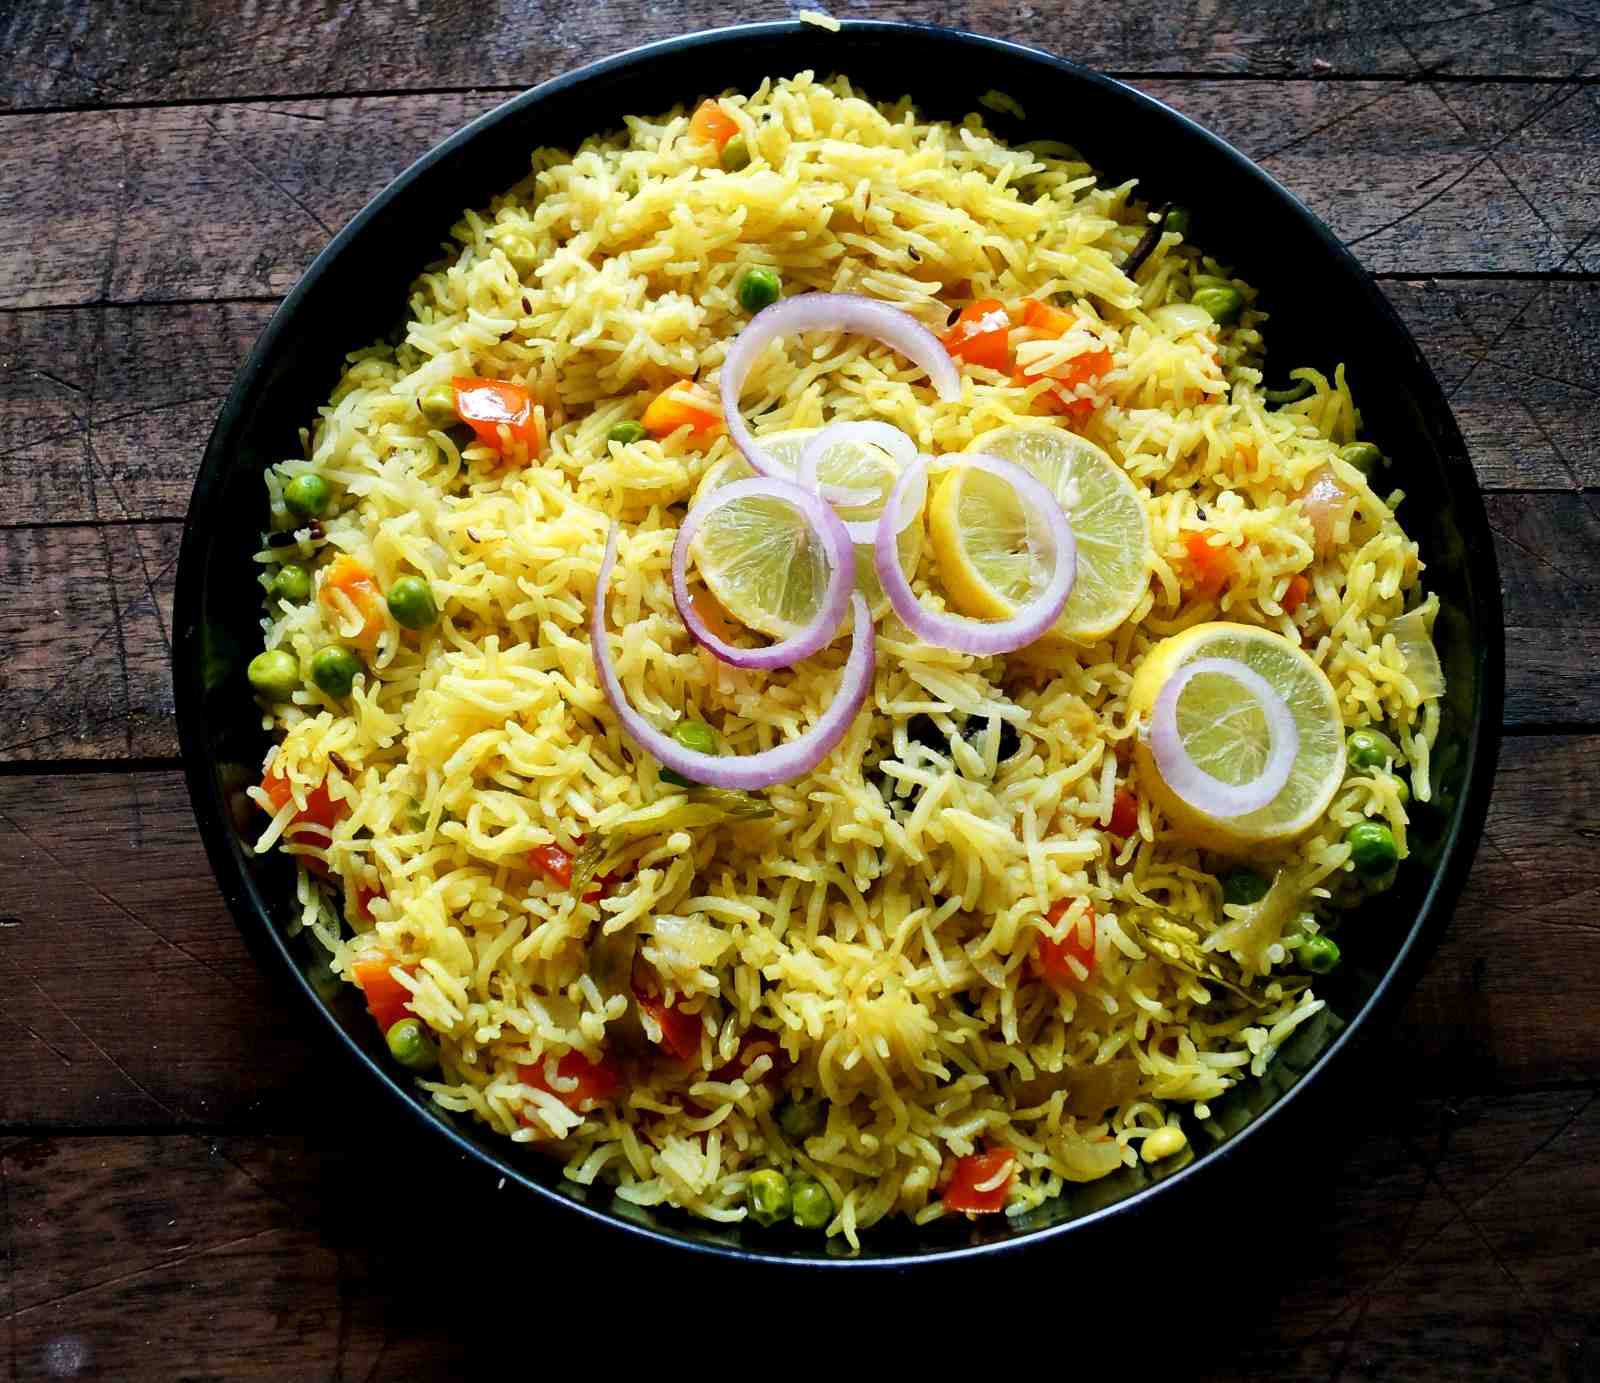 Nepalese veg pulao recipe by archanas kitchen nepalese veg pulao recipe forumfinder Image collections